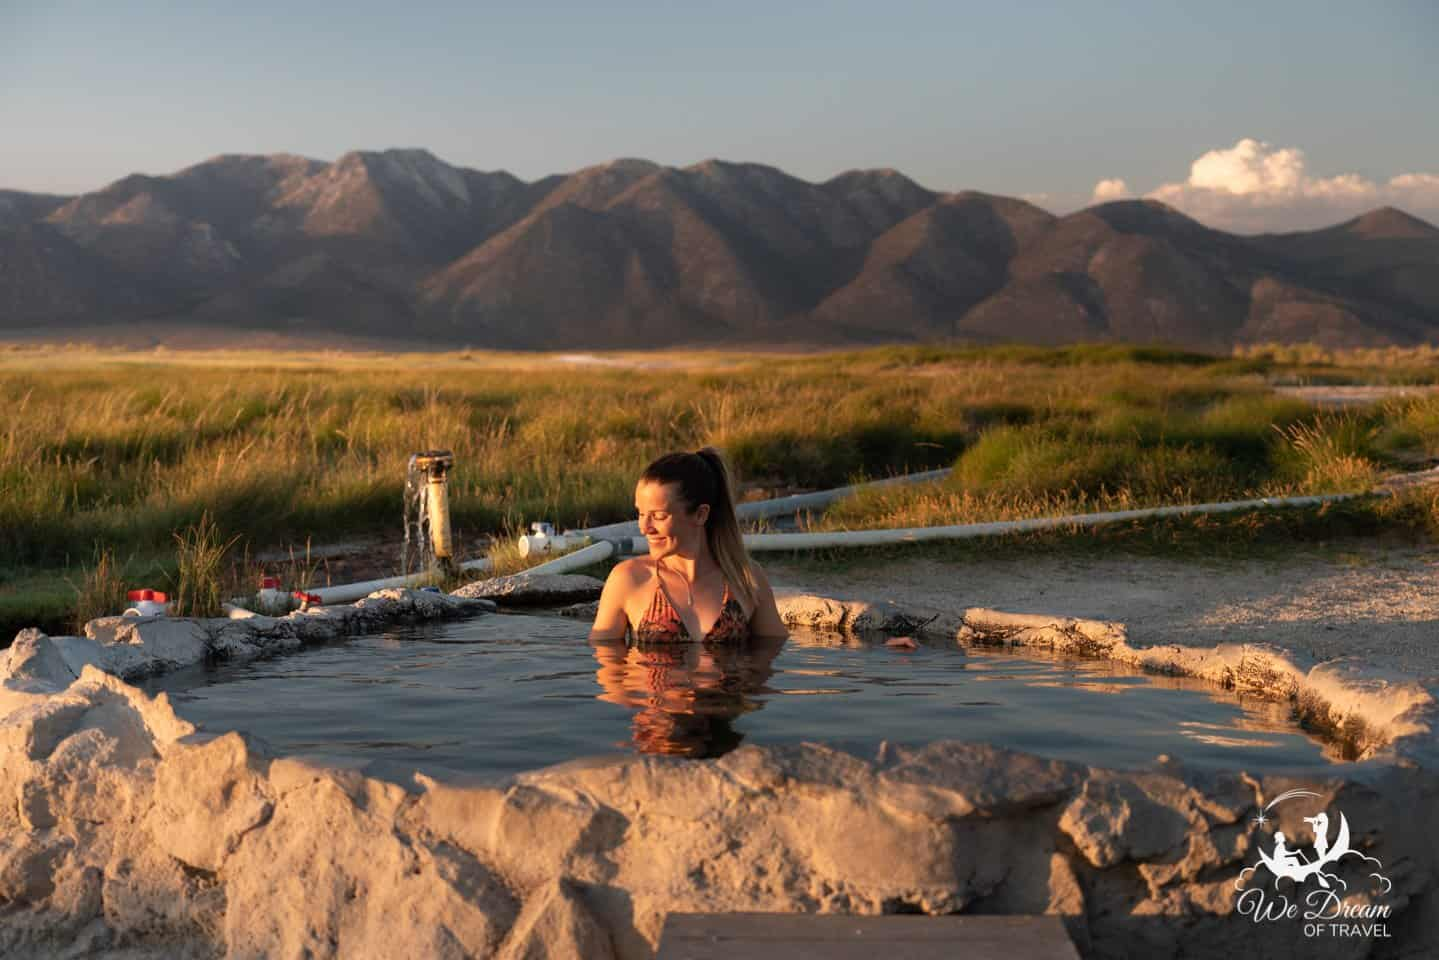 A woman enjoying golden hour at Hilltop Hot Springs (Pulkey's Pool) in Mammoth